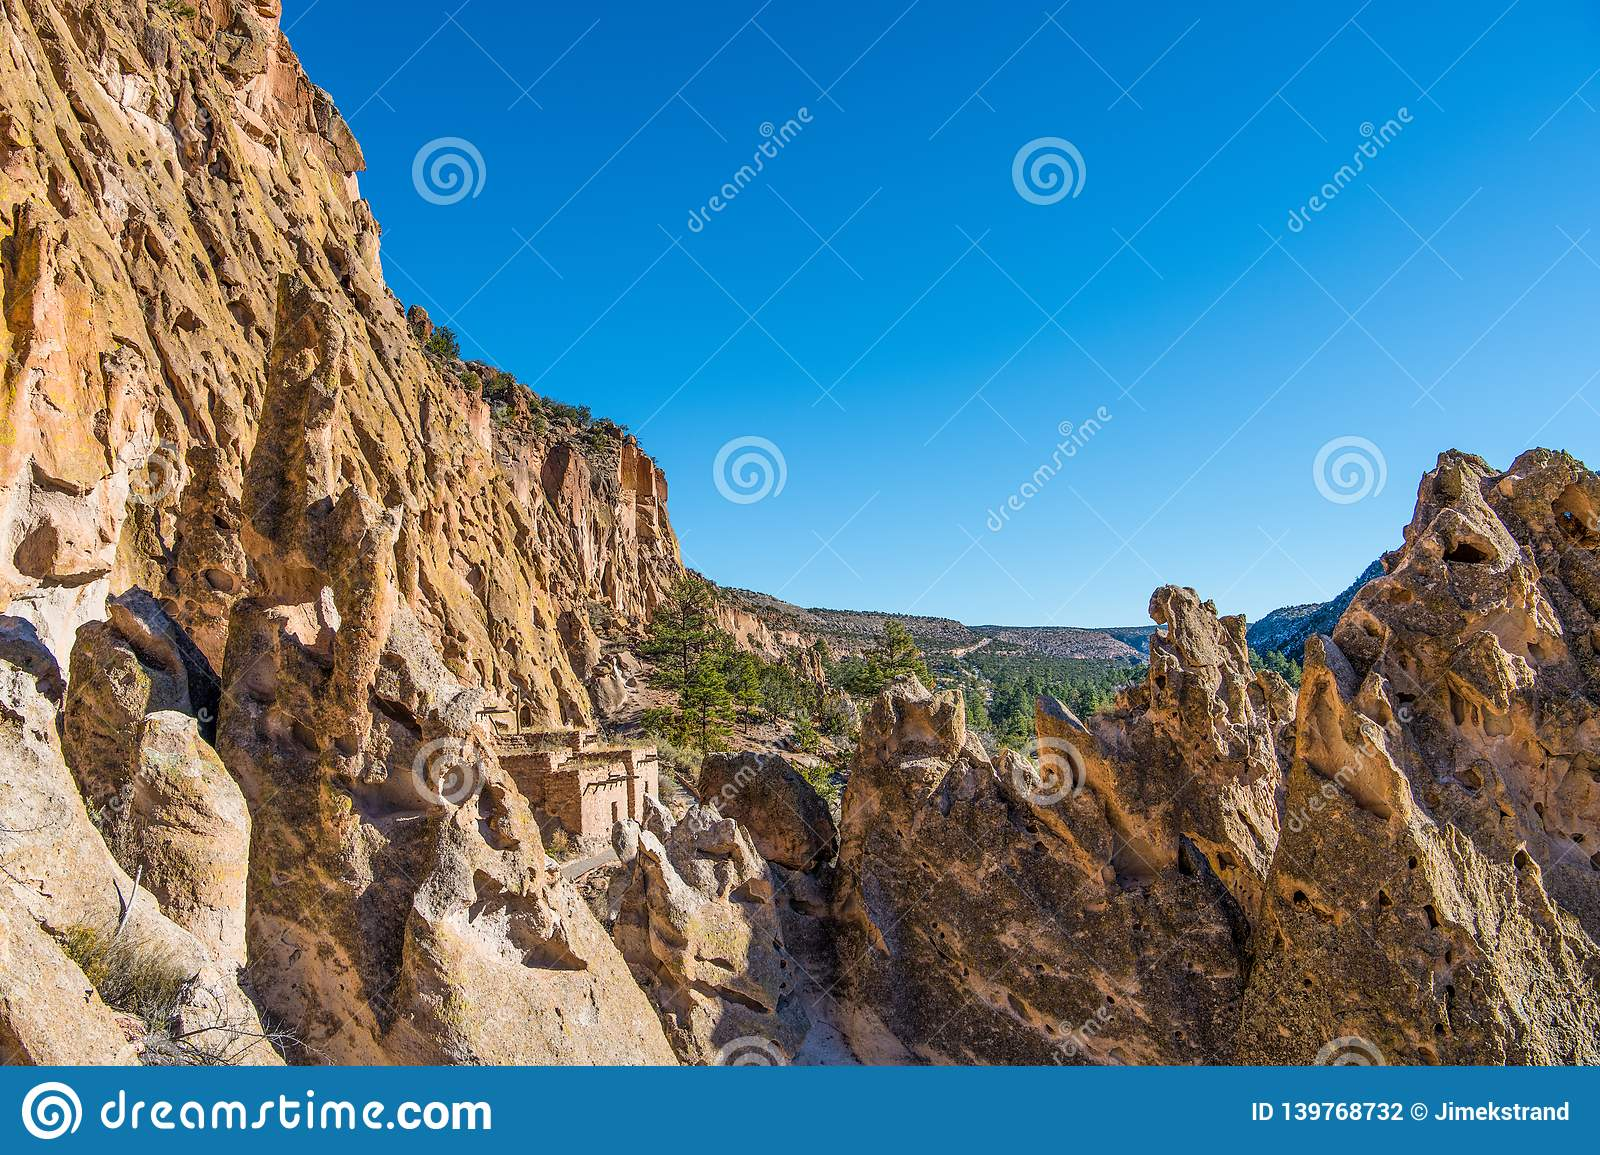 Bandelier New Mexico Cliff Dwellings Royalty Free Stock